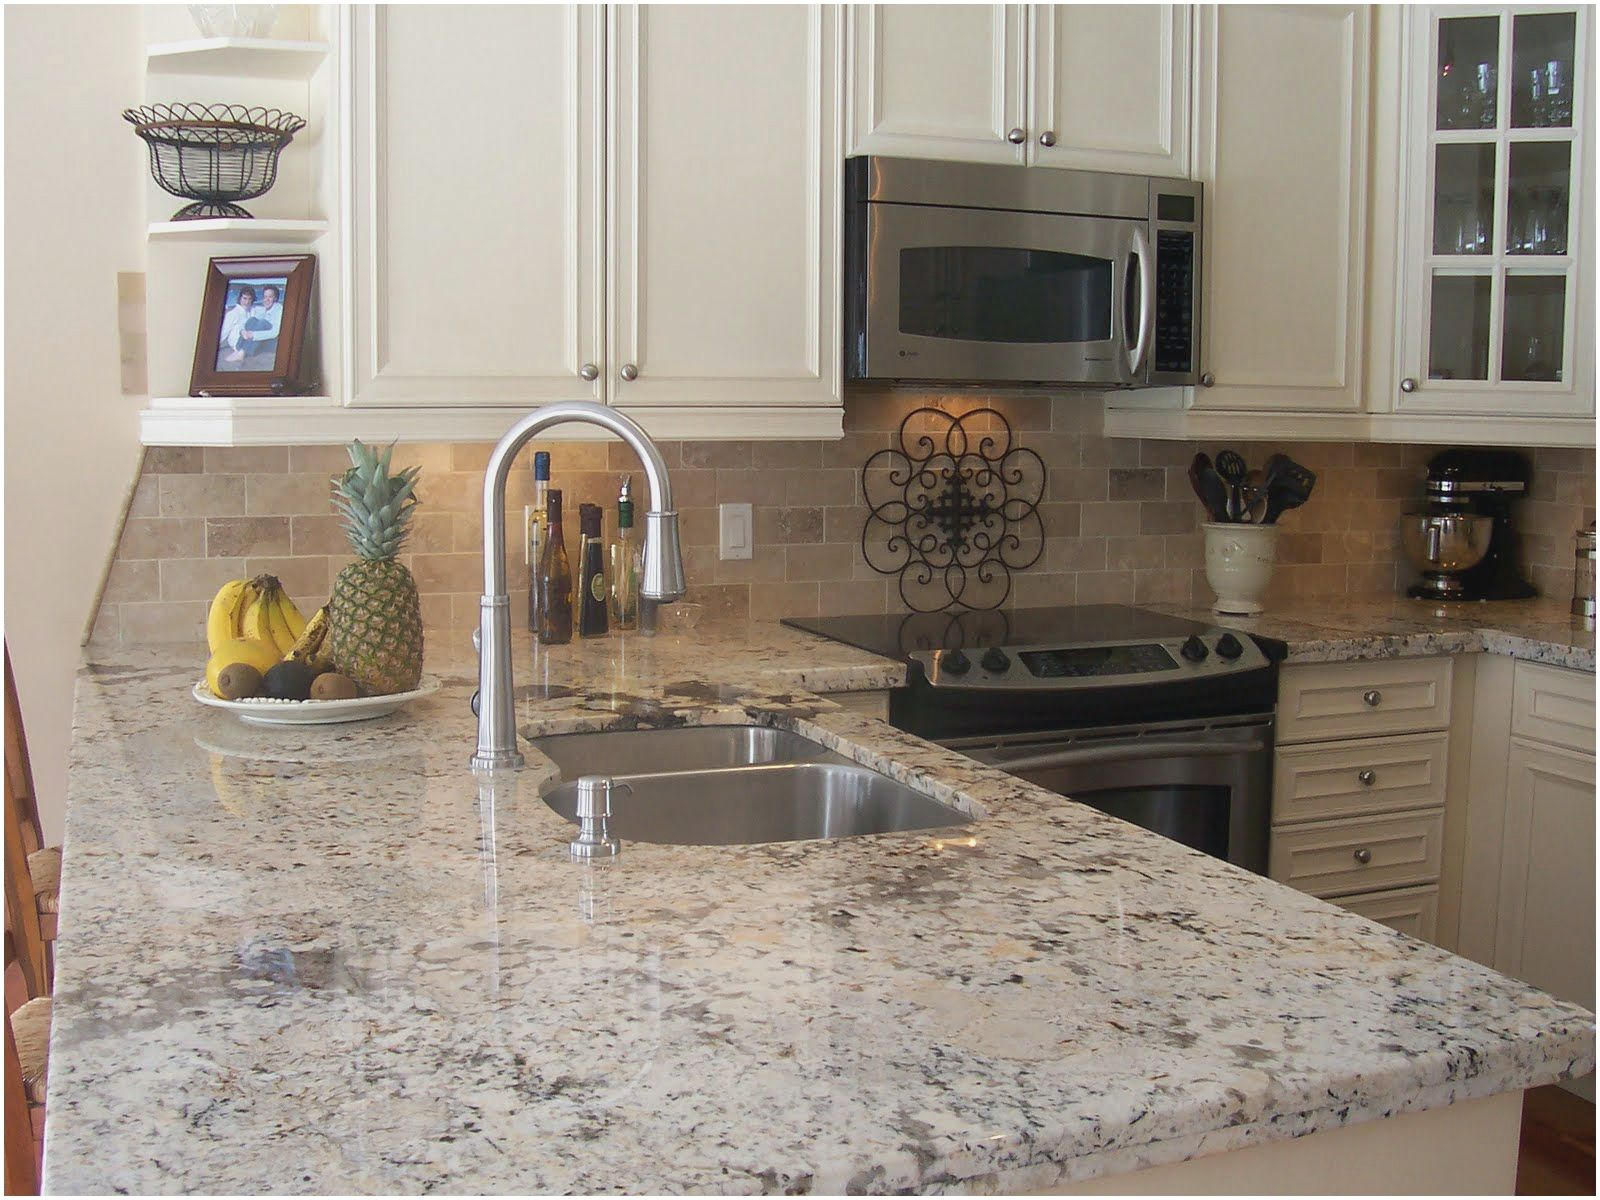 15 Best Of White Kitchens With Granite From Granite Kitchen Countertops In This Website We Inexpensive Kitchen Remodel Kitchen Remodel Kitchen Remodel Layout